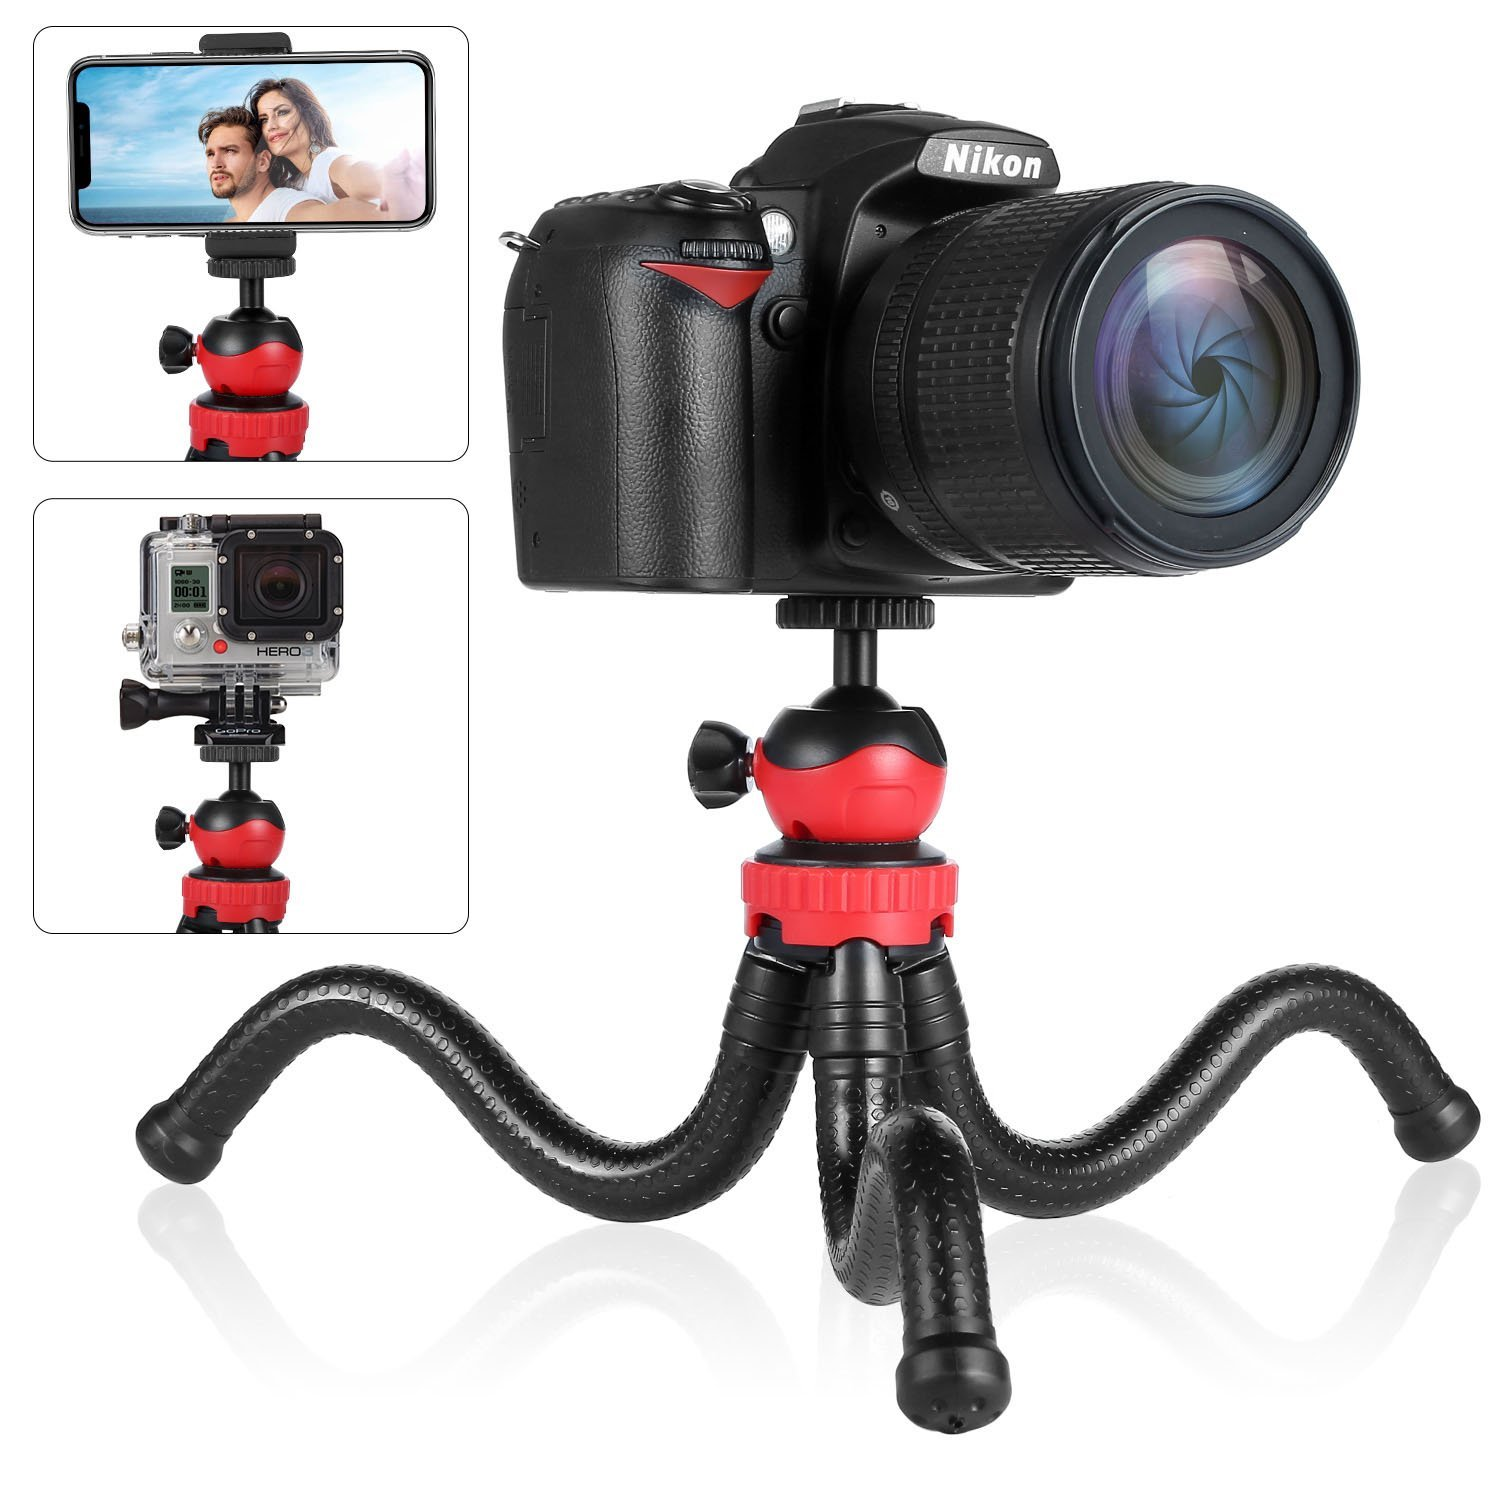 Tripod for Phone, Sellemer Flexible Tripod Remote iPhone X 7 8 6 Plus, Samsung S9 S8, Camera for GoPro Akaso Canon Nikon DSLR, Cellphone Tripod Stand